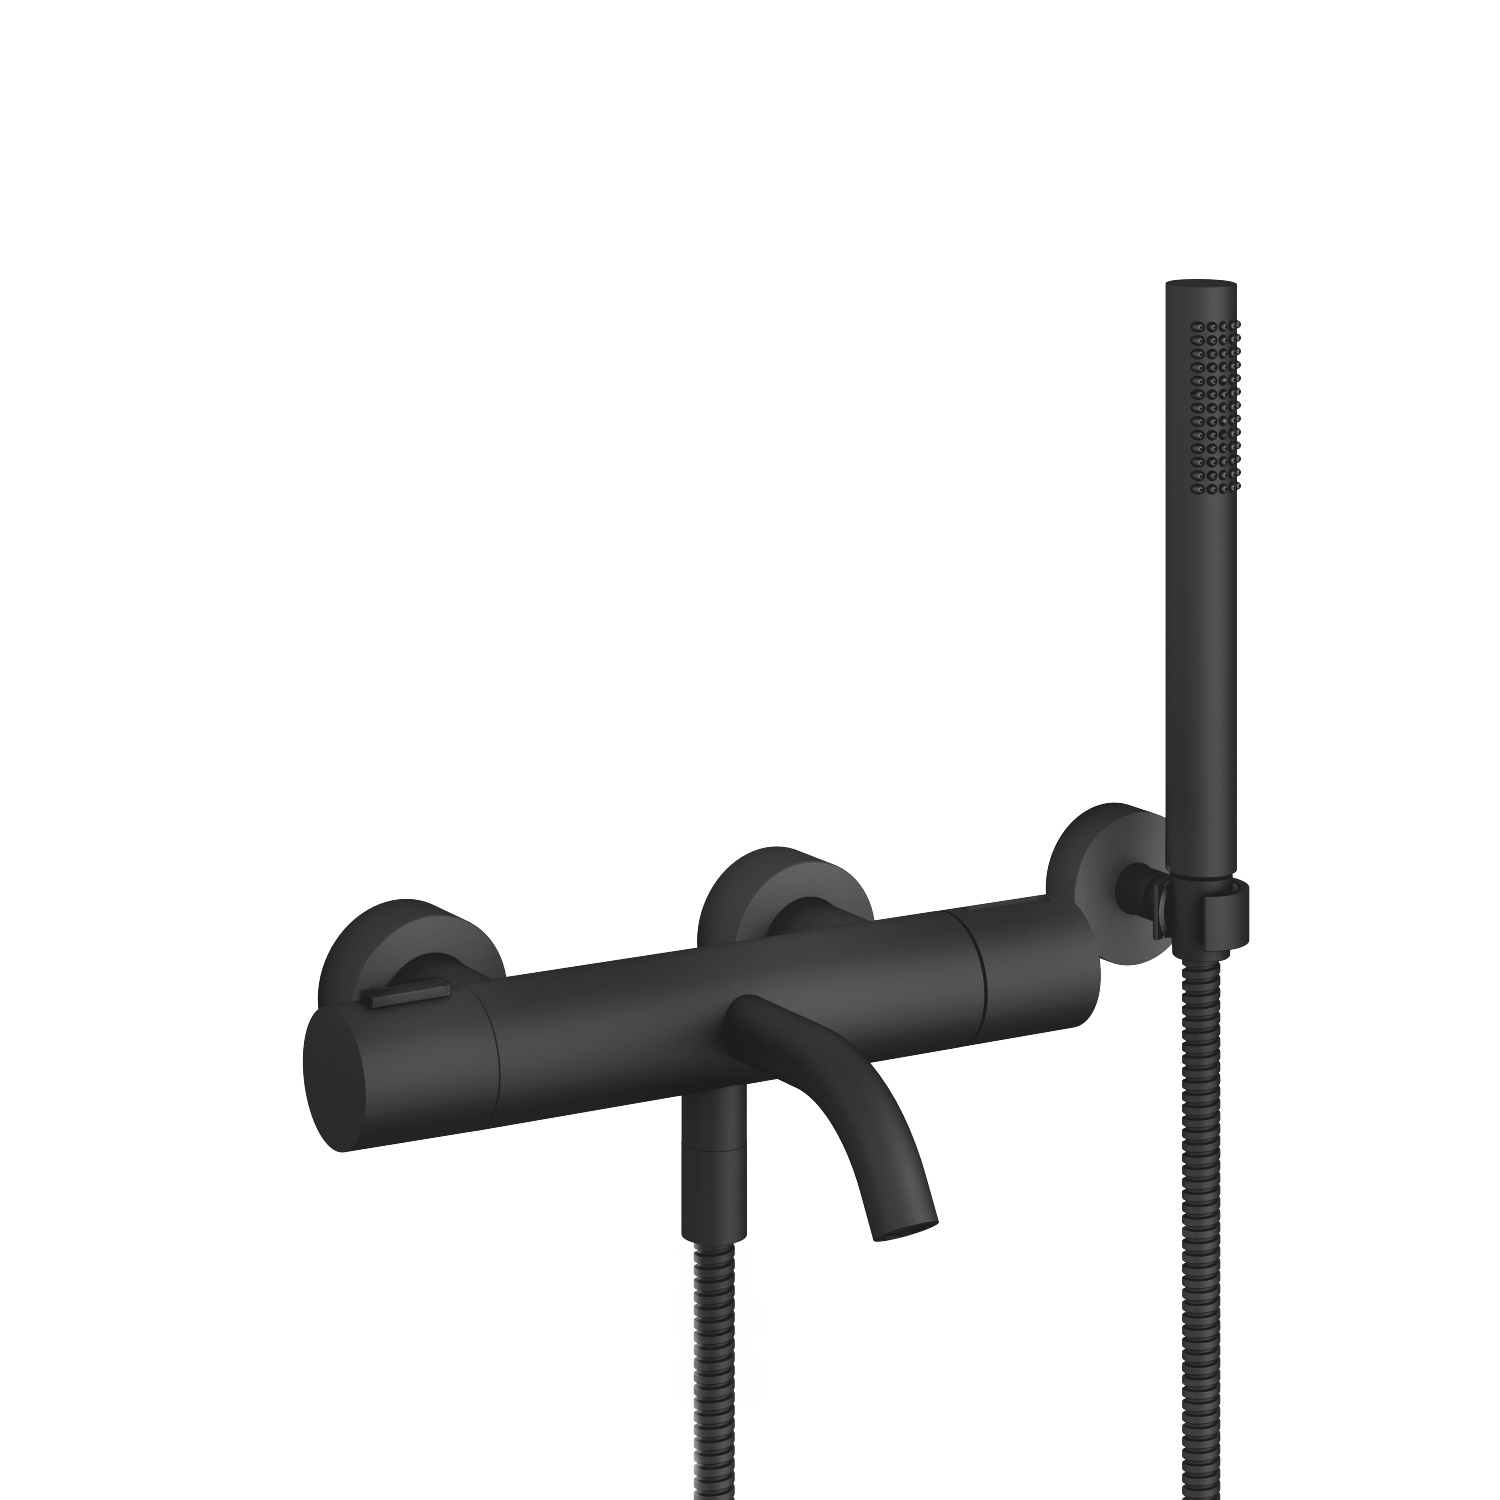 Bath thermostat for wall mounting with hand shower set - matt black